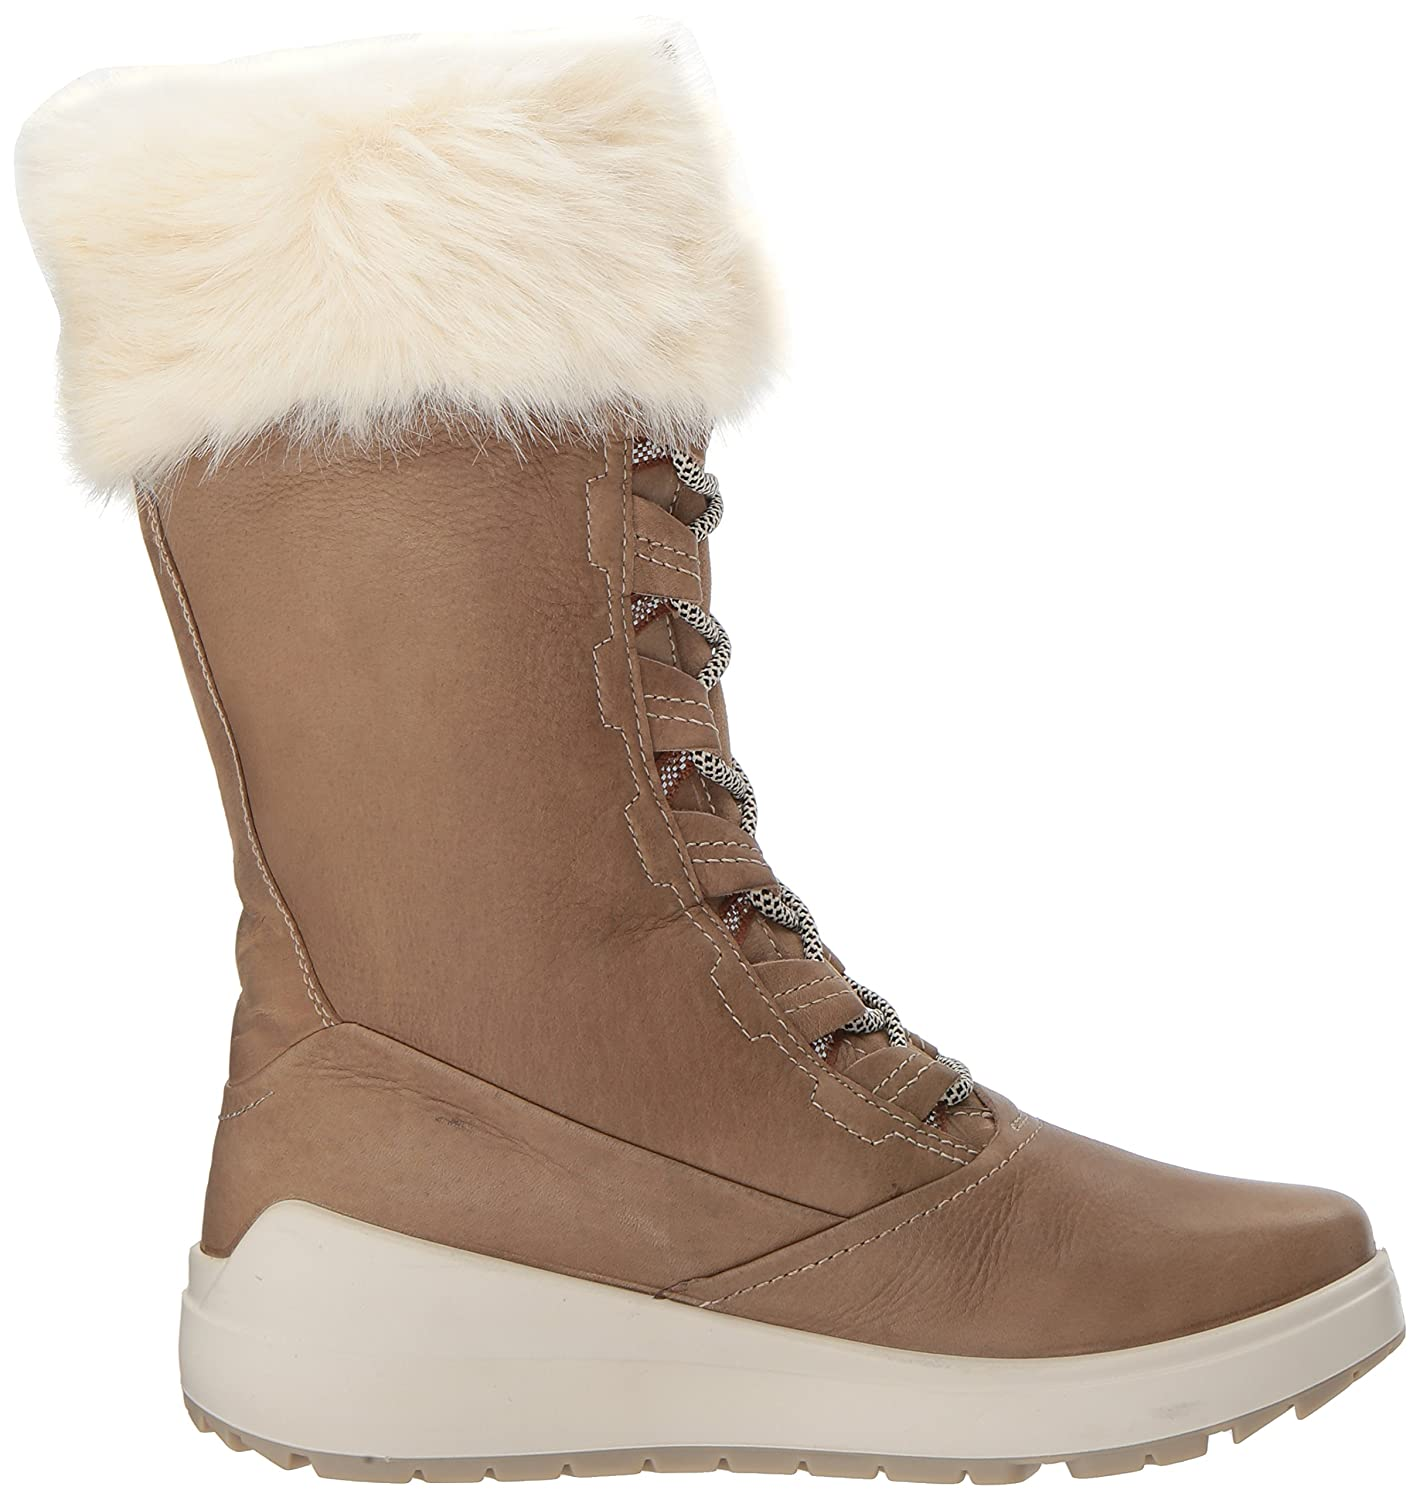 ECCO Women's Noyce Tall Snow Boot B01M71B6KA 42 EU / 11-11.5 US|Navajo Brown/Navajo Brown